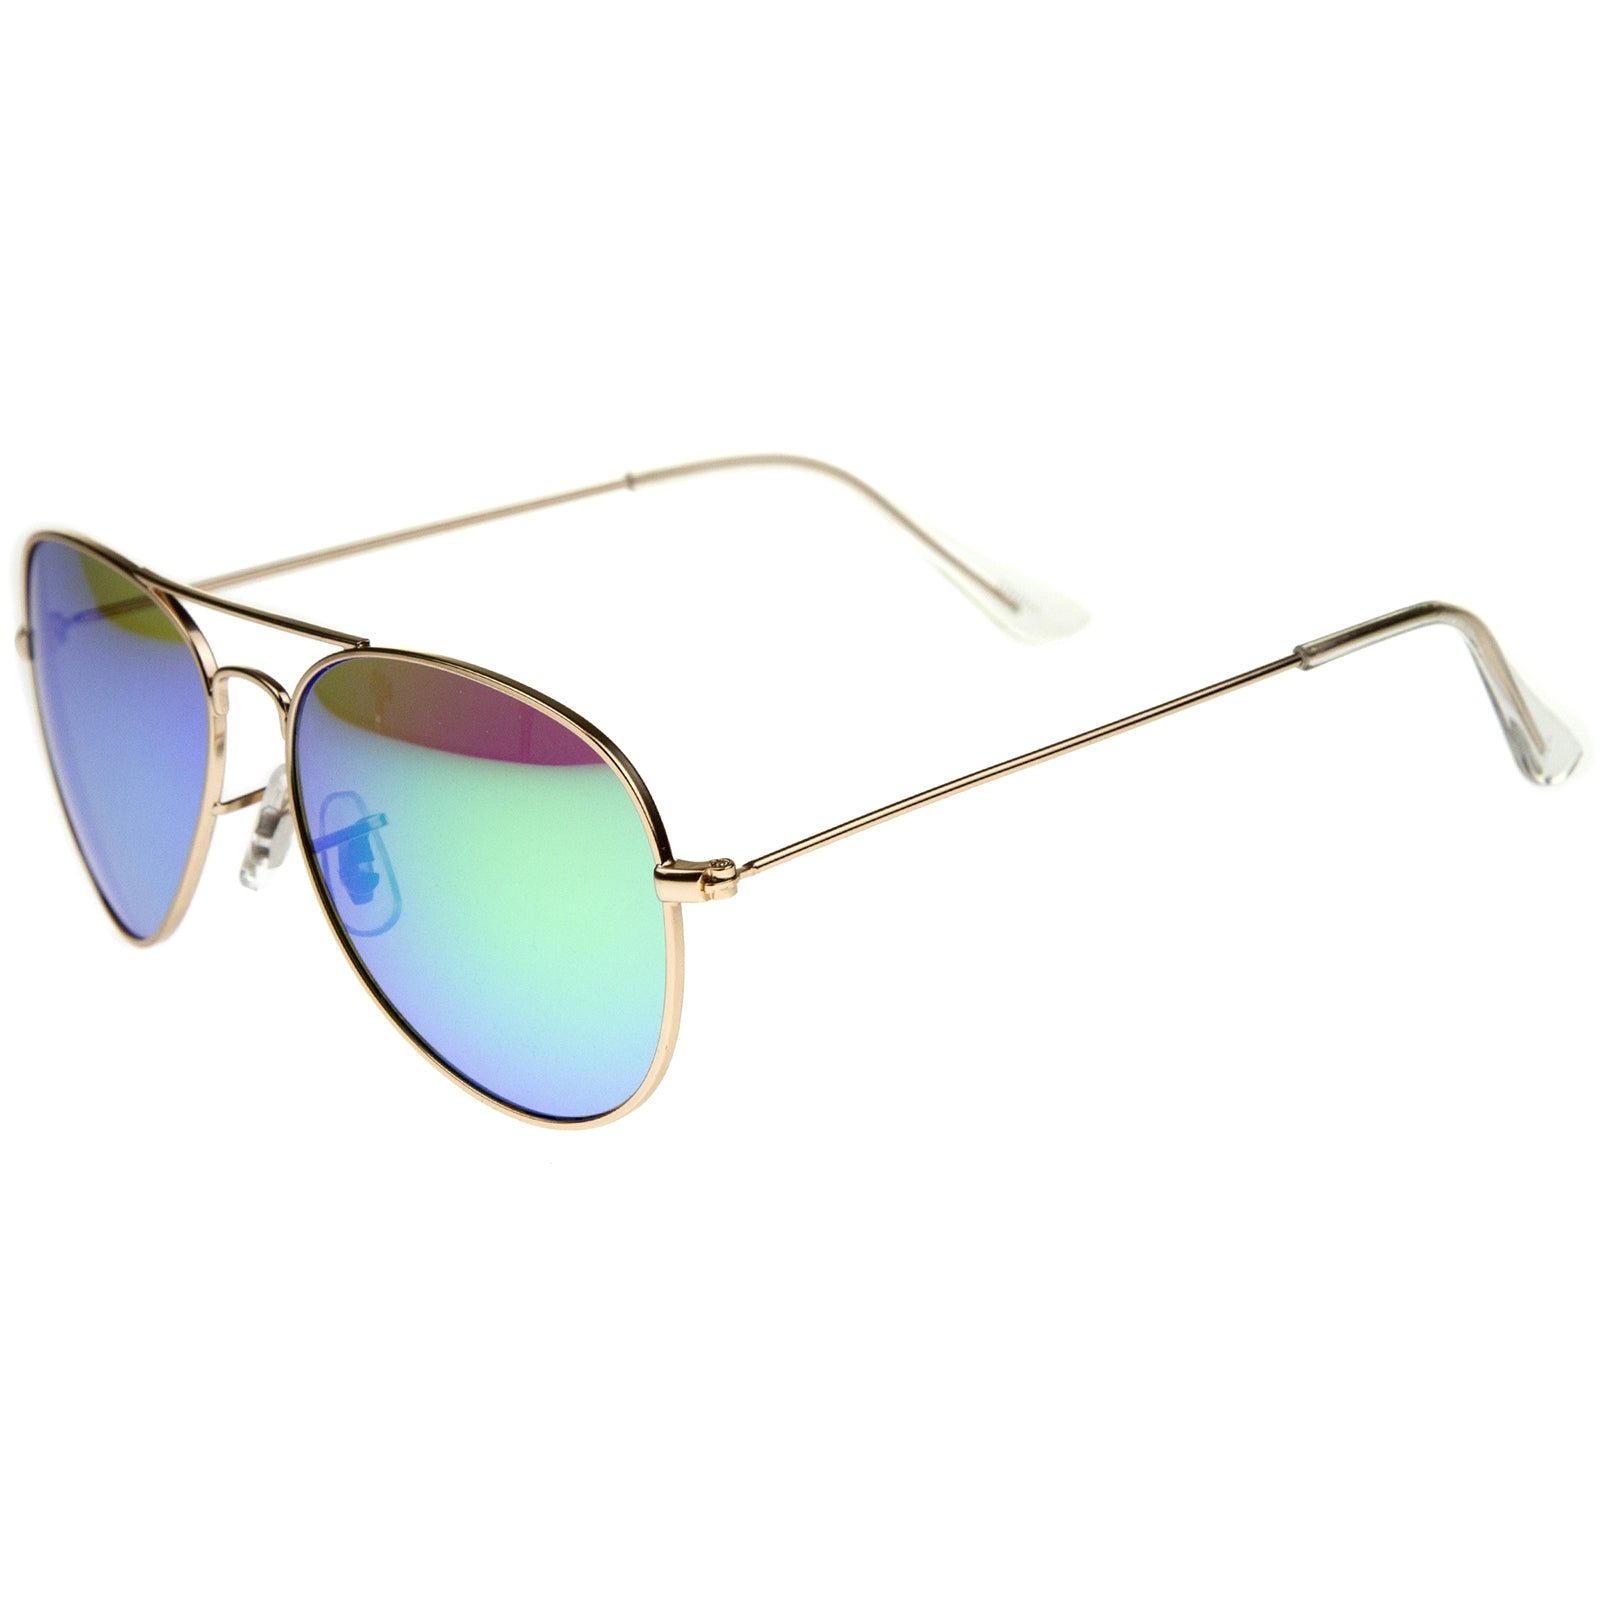 Premium Nickel Plated Frame Multi-Coated Mirror Lens Aviator Sunglasses 59mm - sunglass.la - 11